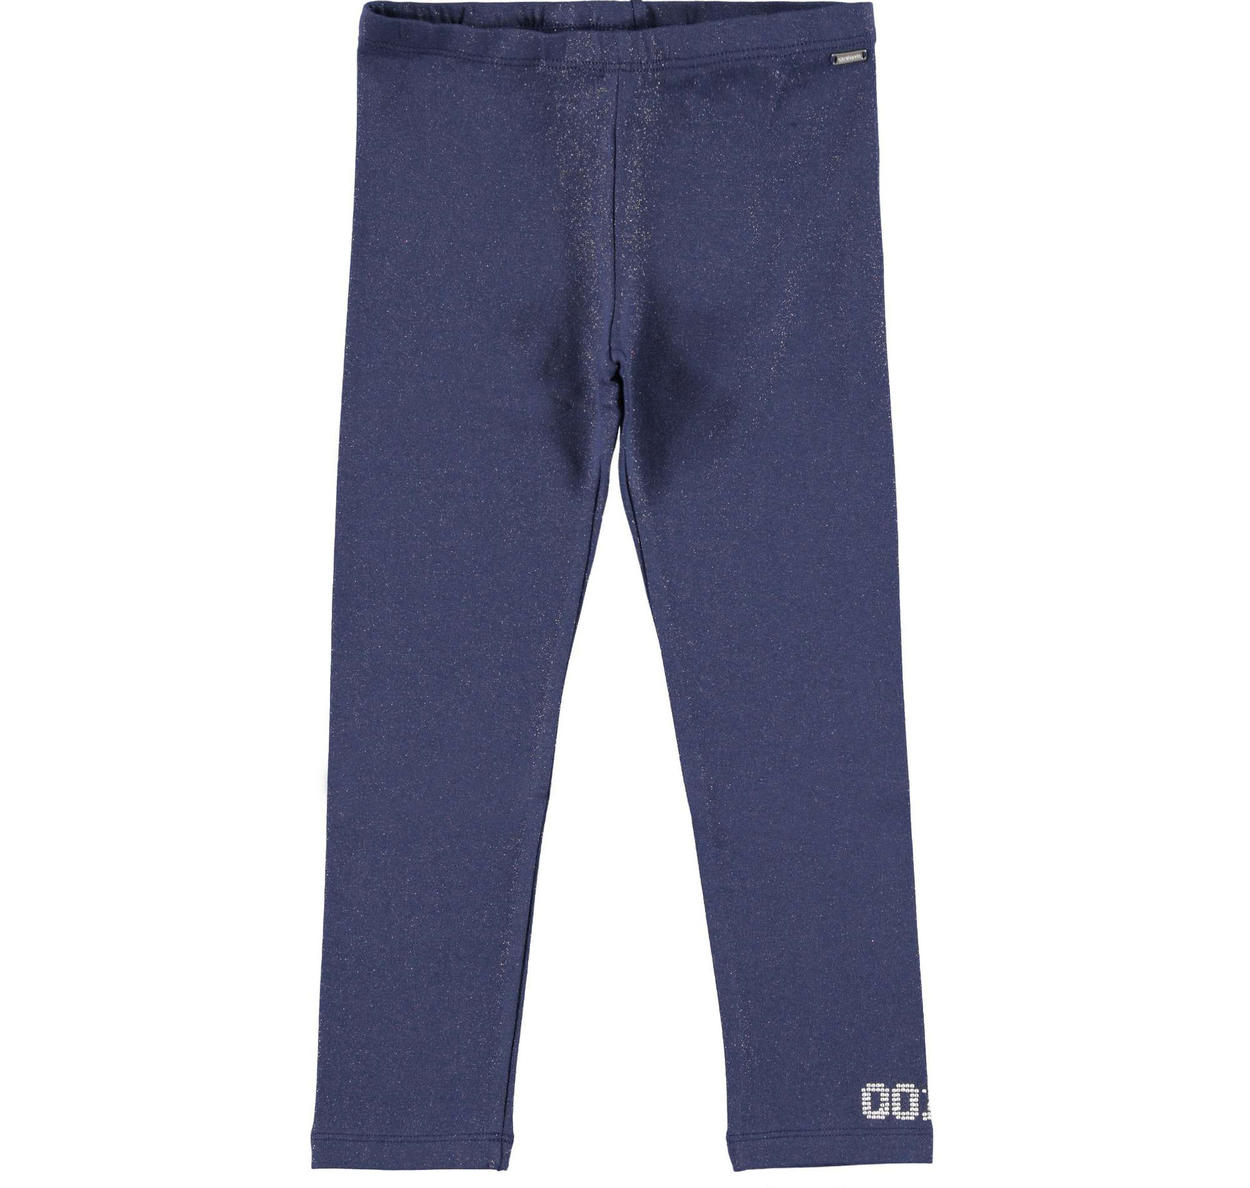 97136f17cc192 Sarabanda glitter leggings with studs for girls from 6 to 16 years NAVY-SILVER  GLITTER